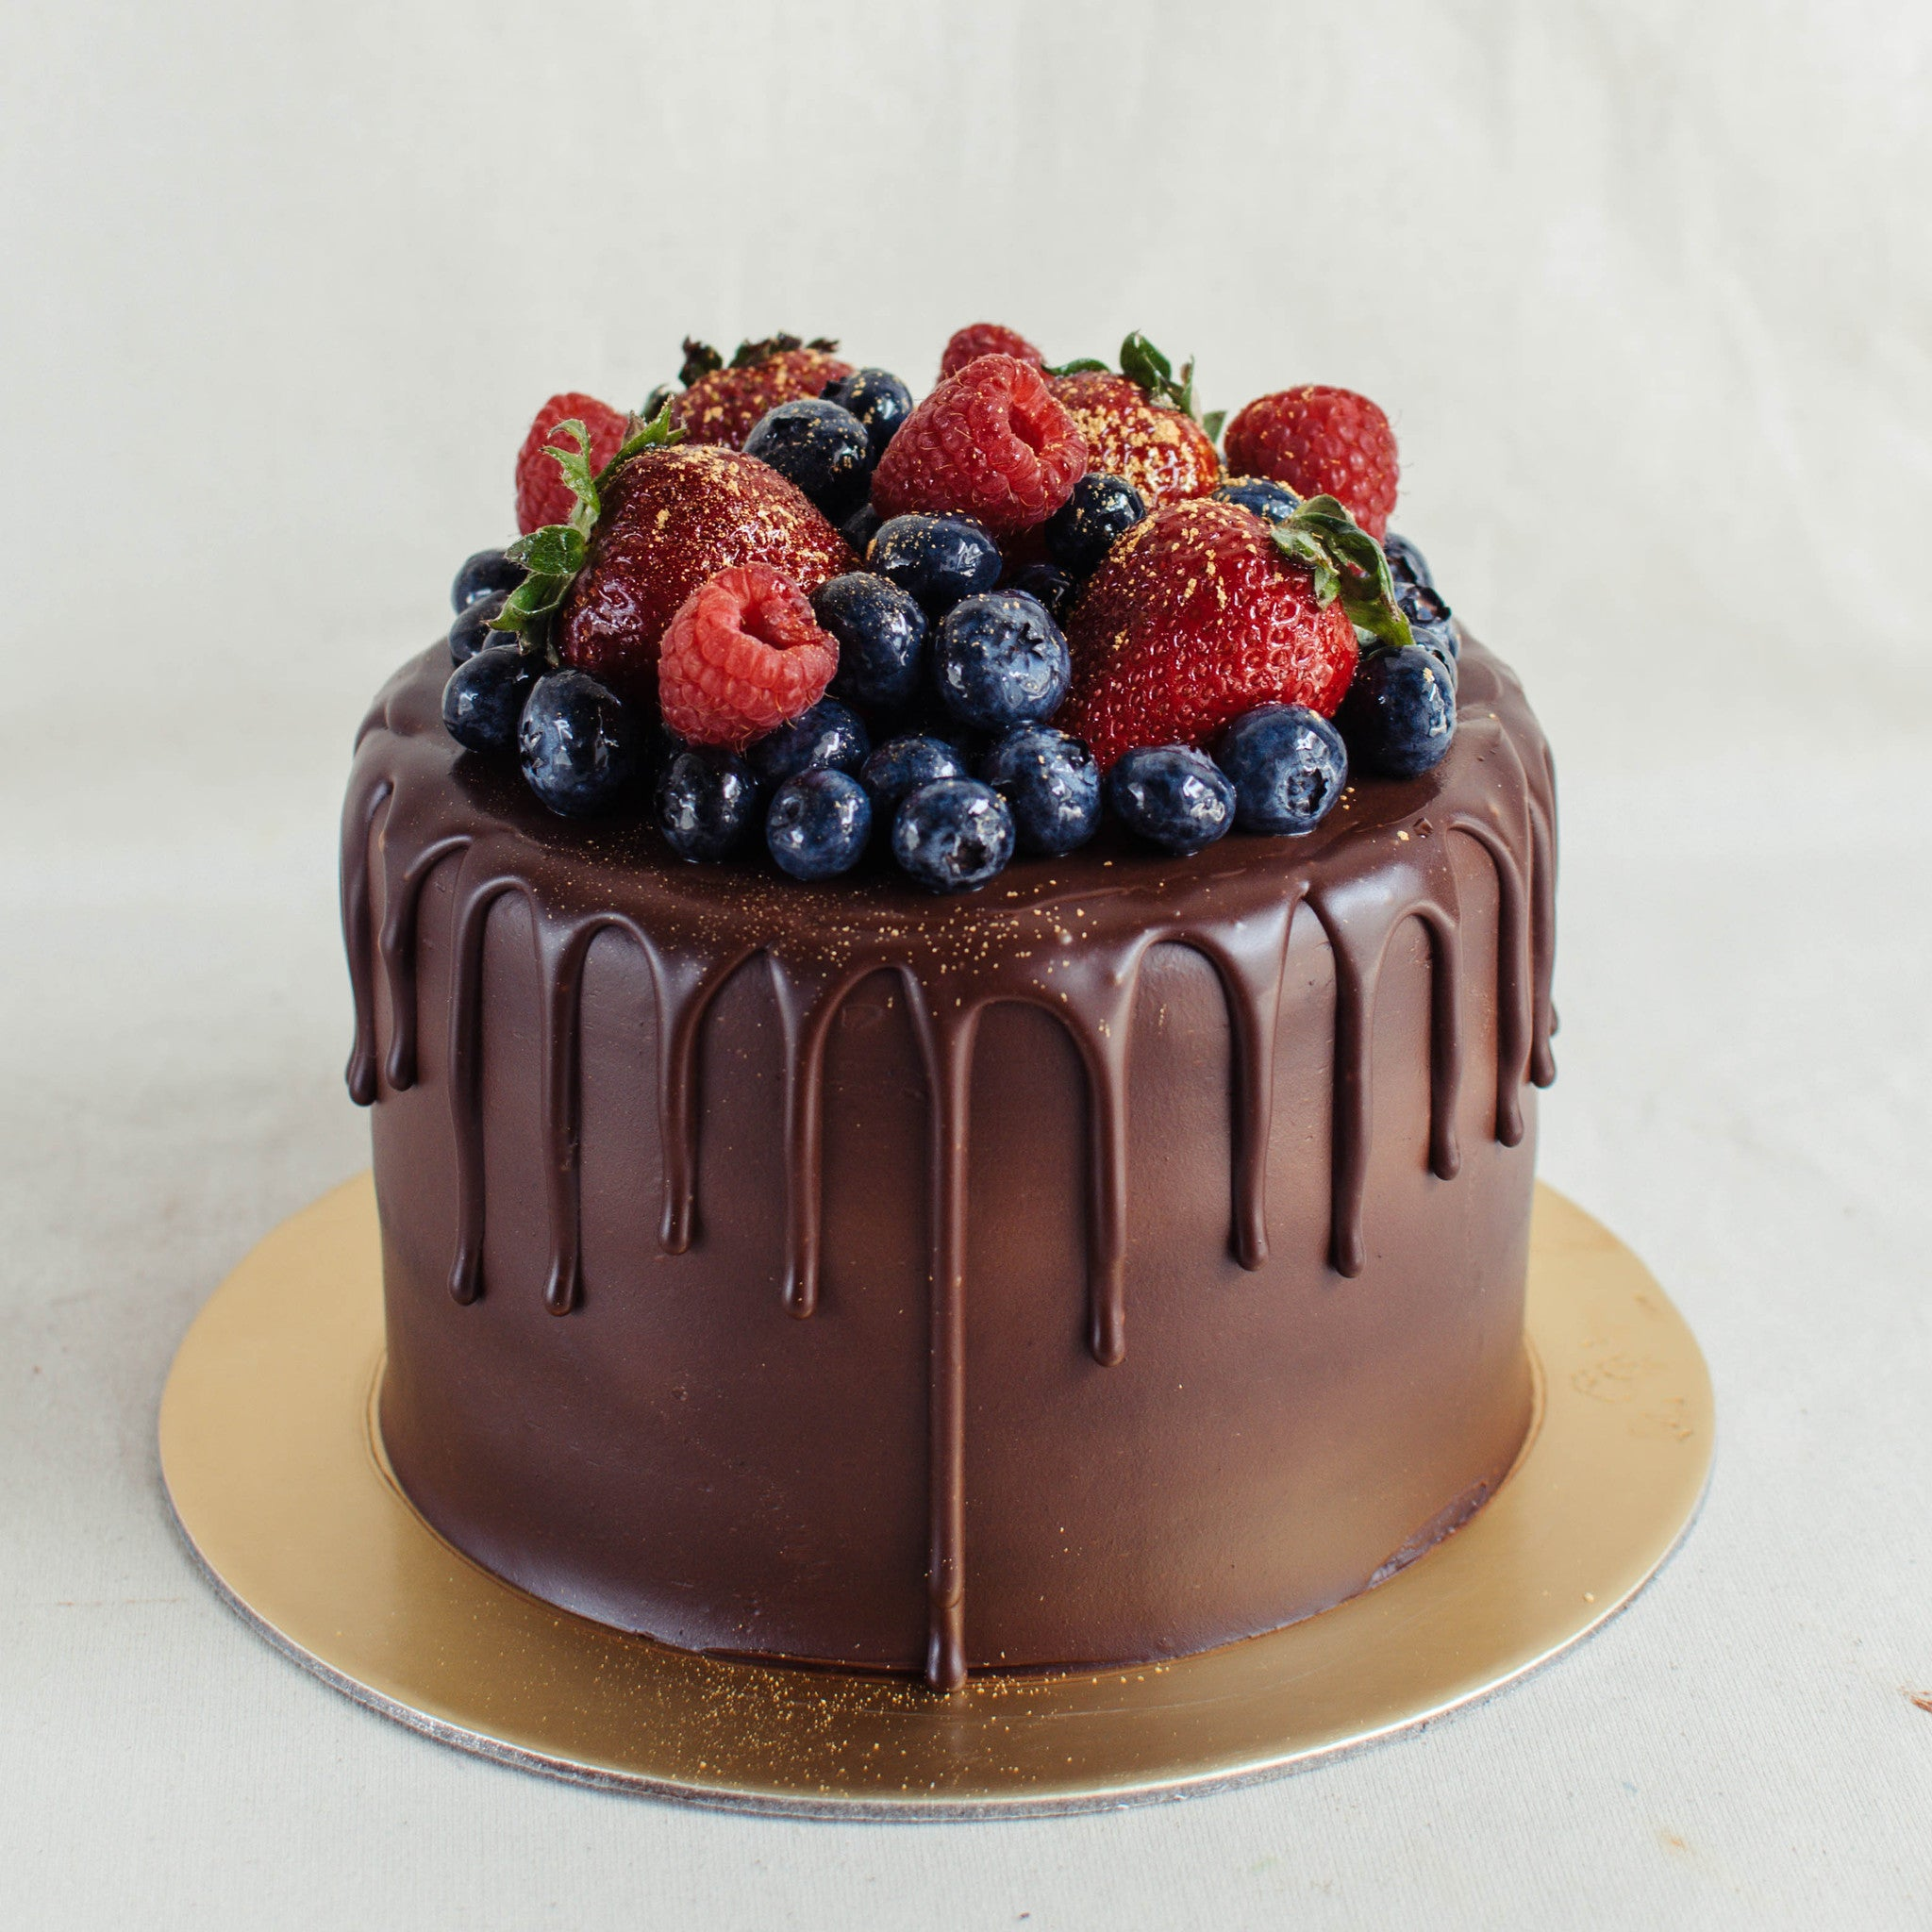 Chocolate Truffle with Mixed Berries - Custom Bakes by Edith Patisserie